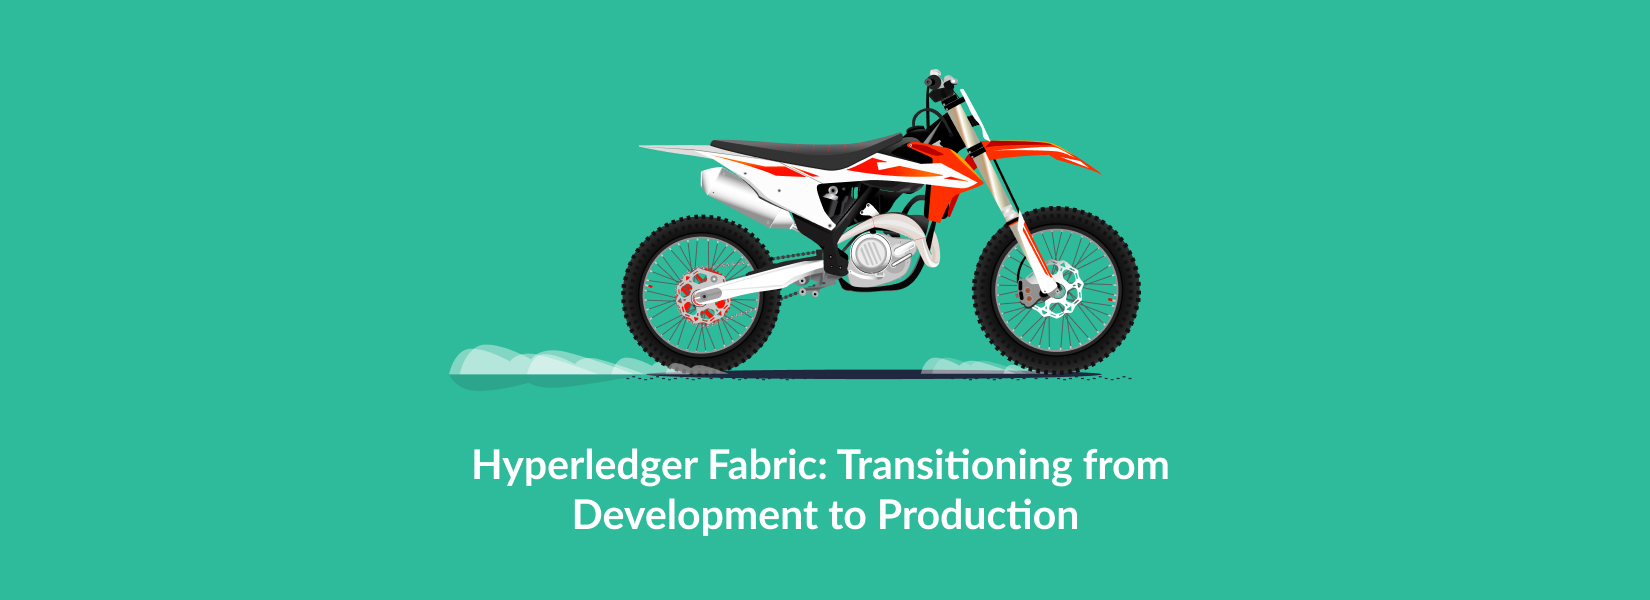 Hyperledger Fabric: Transitioning from Development to Production